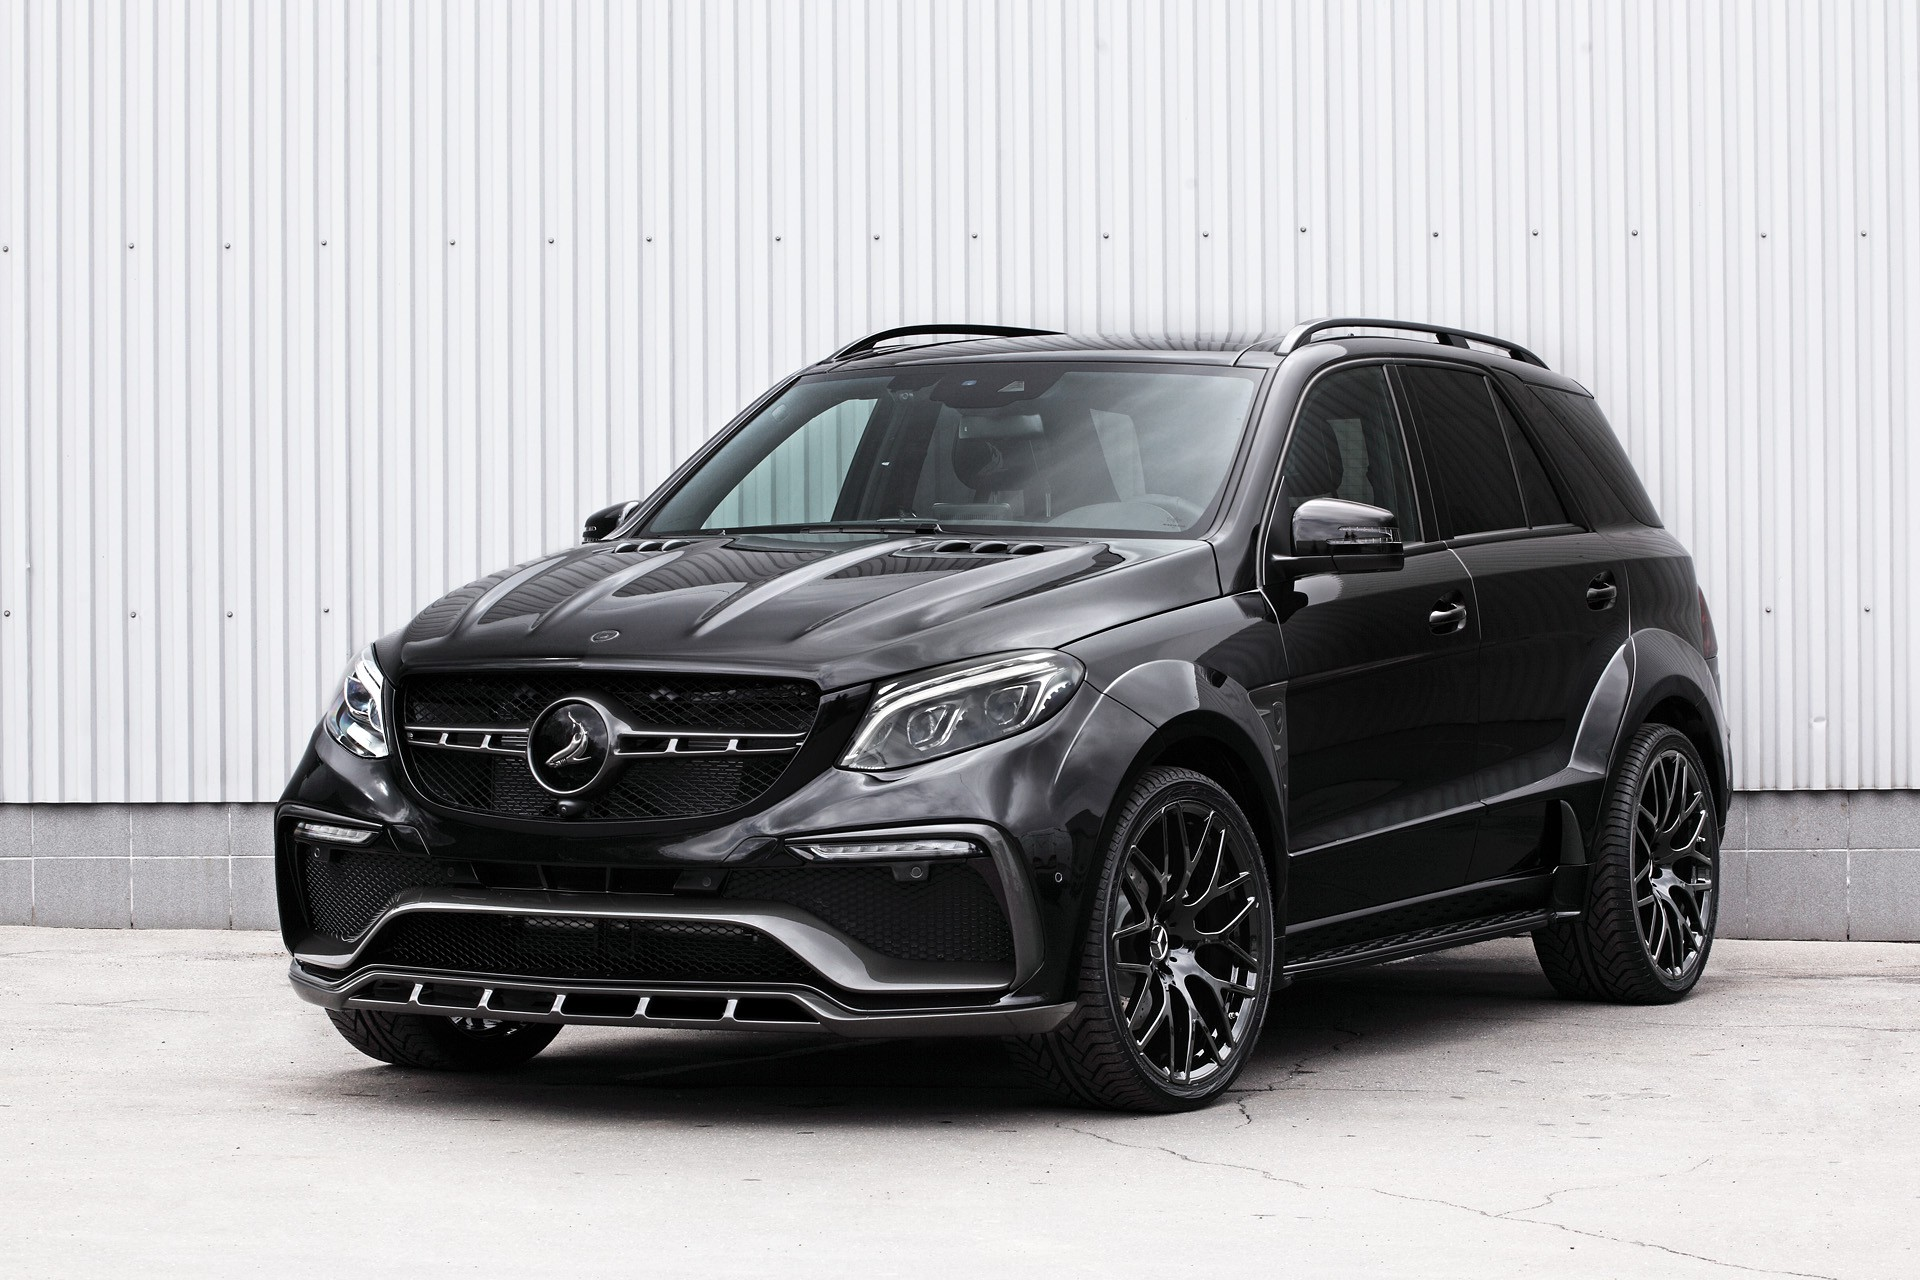 Mercedes benz gle wagon 43 amg inferno black topcar for Mercedes benz tuning parts